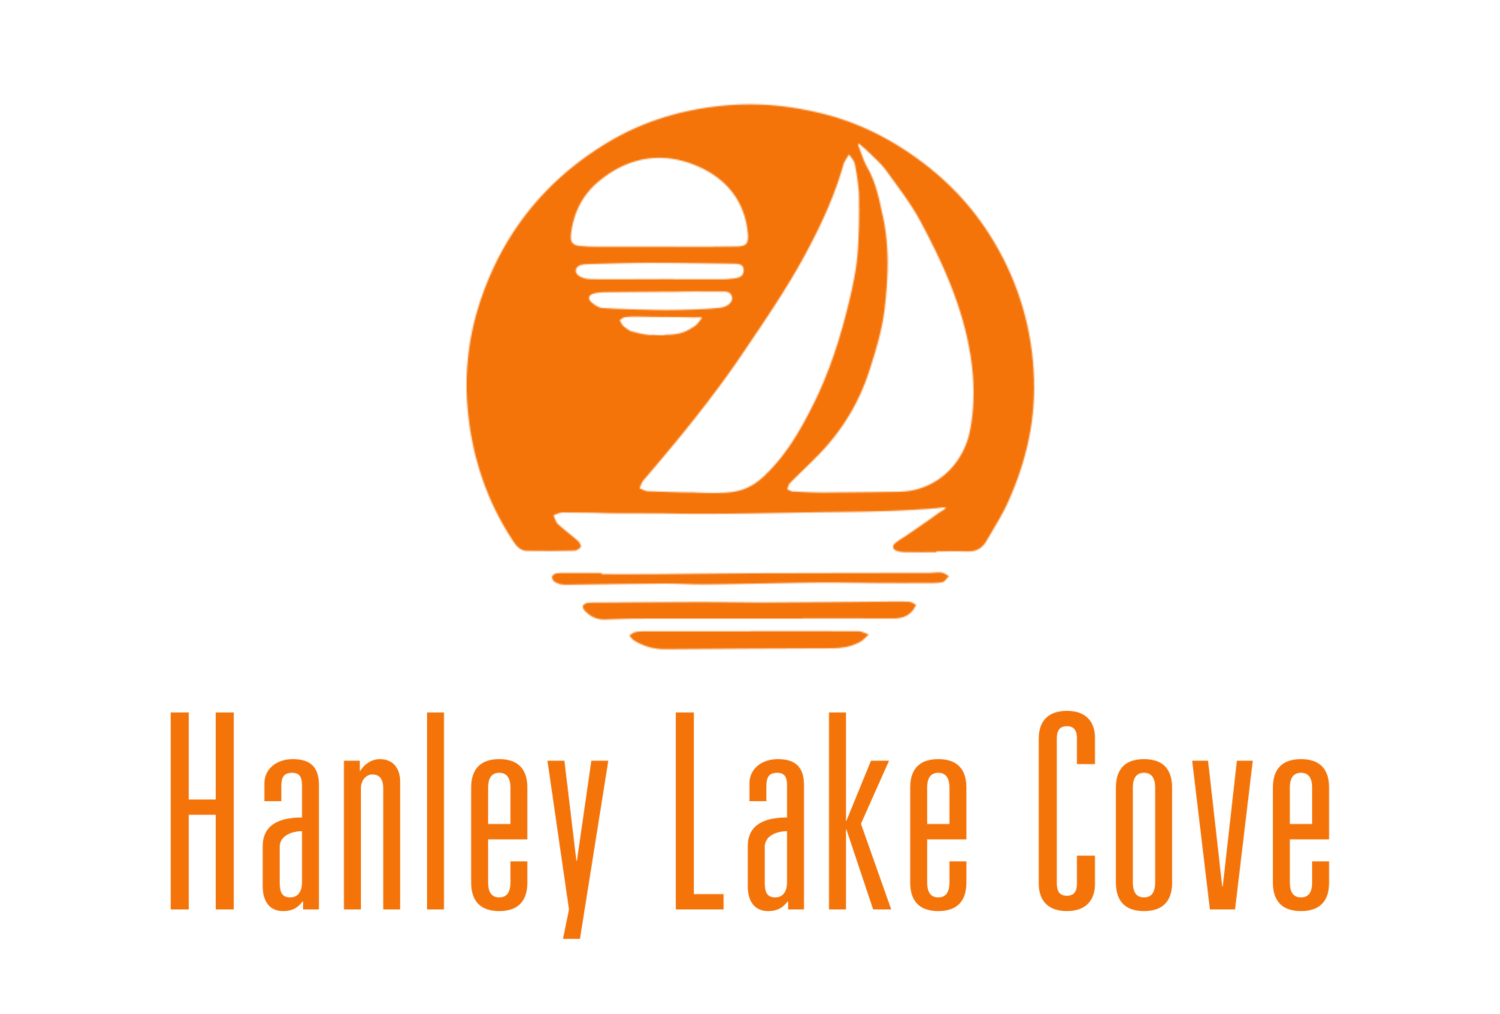 Hanley Lake Cove